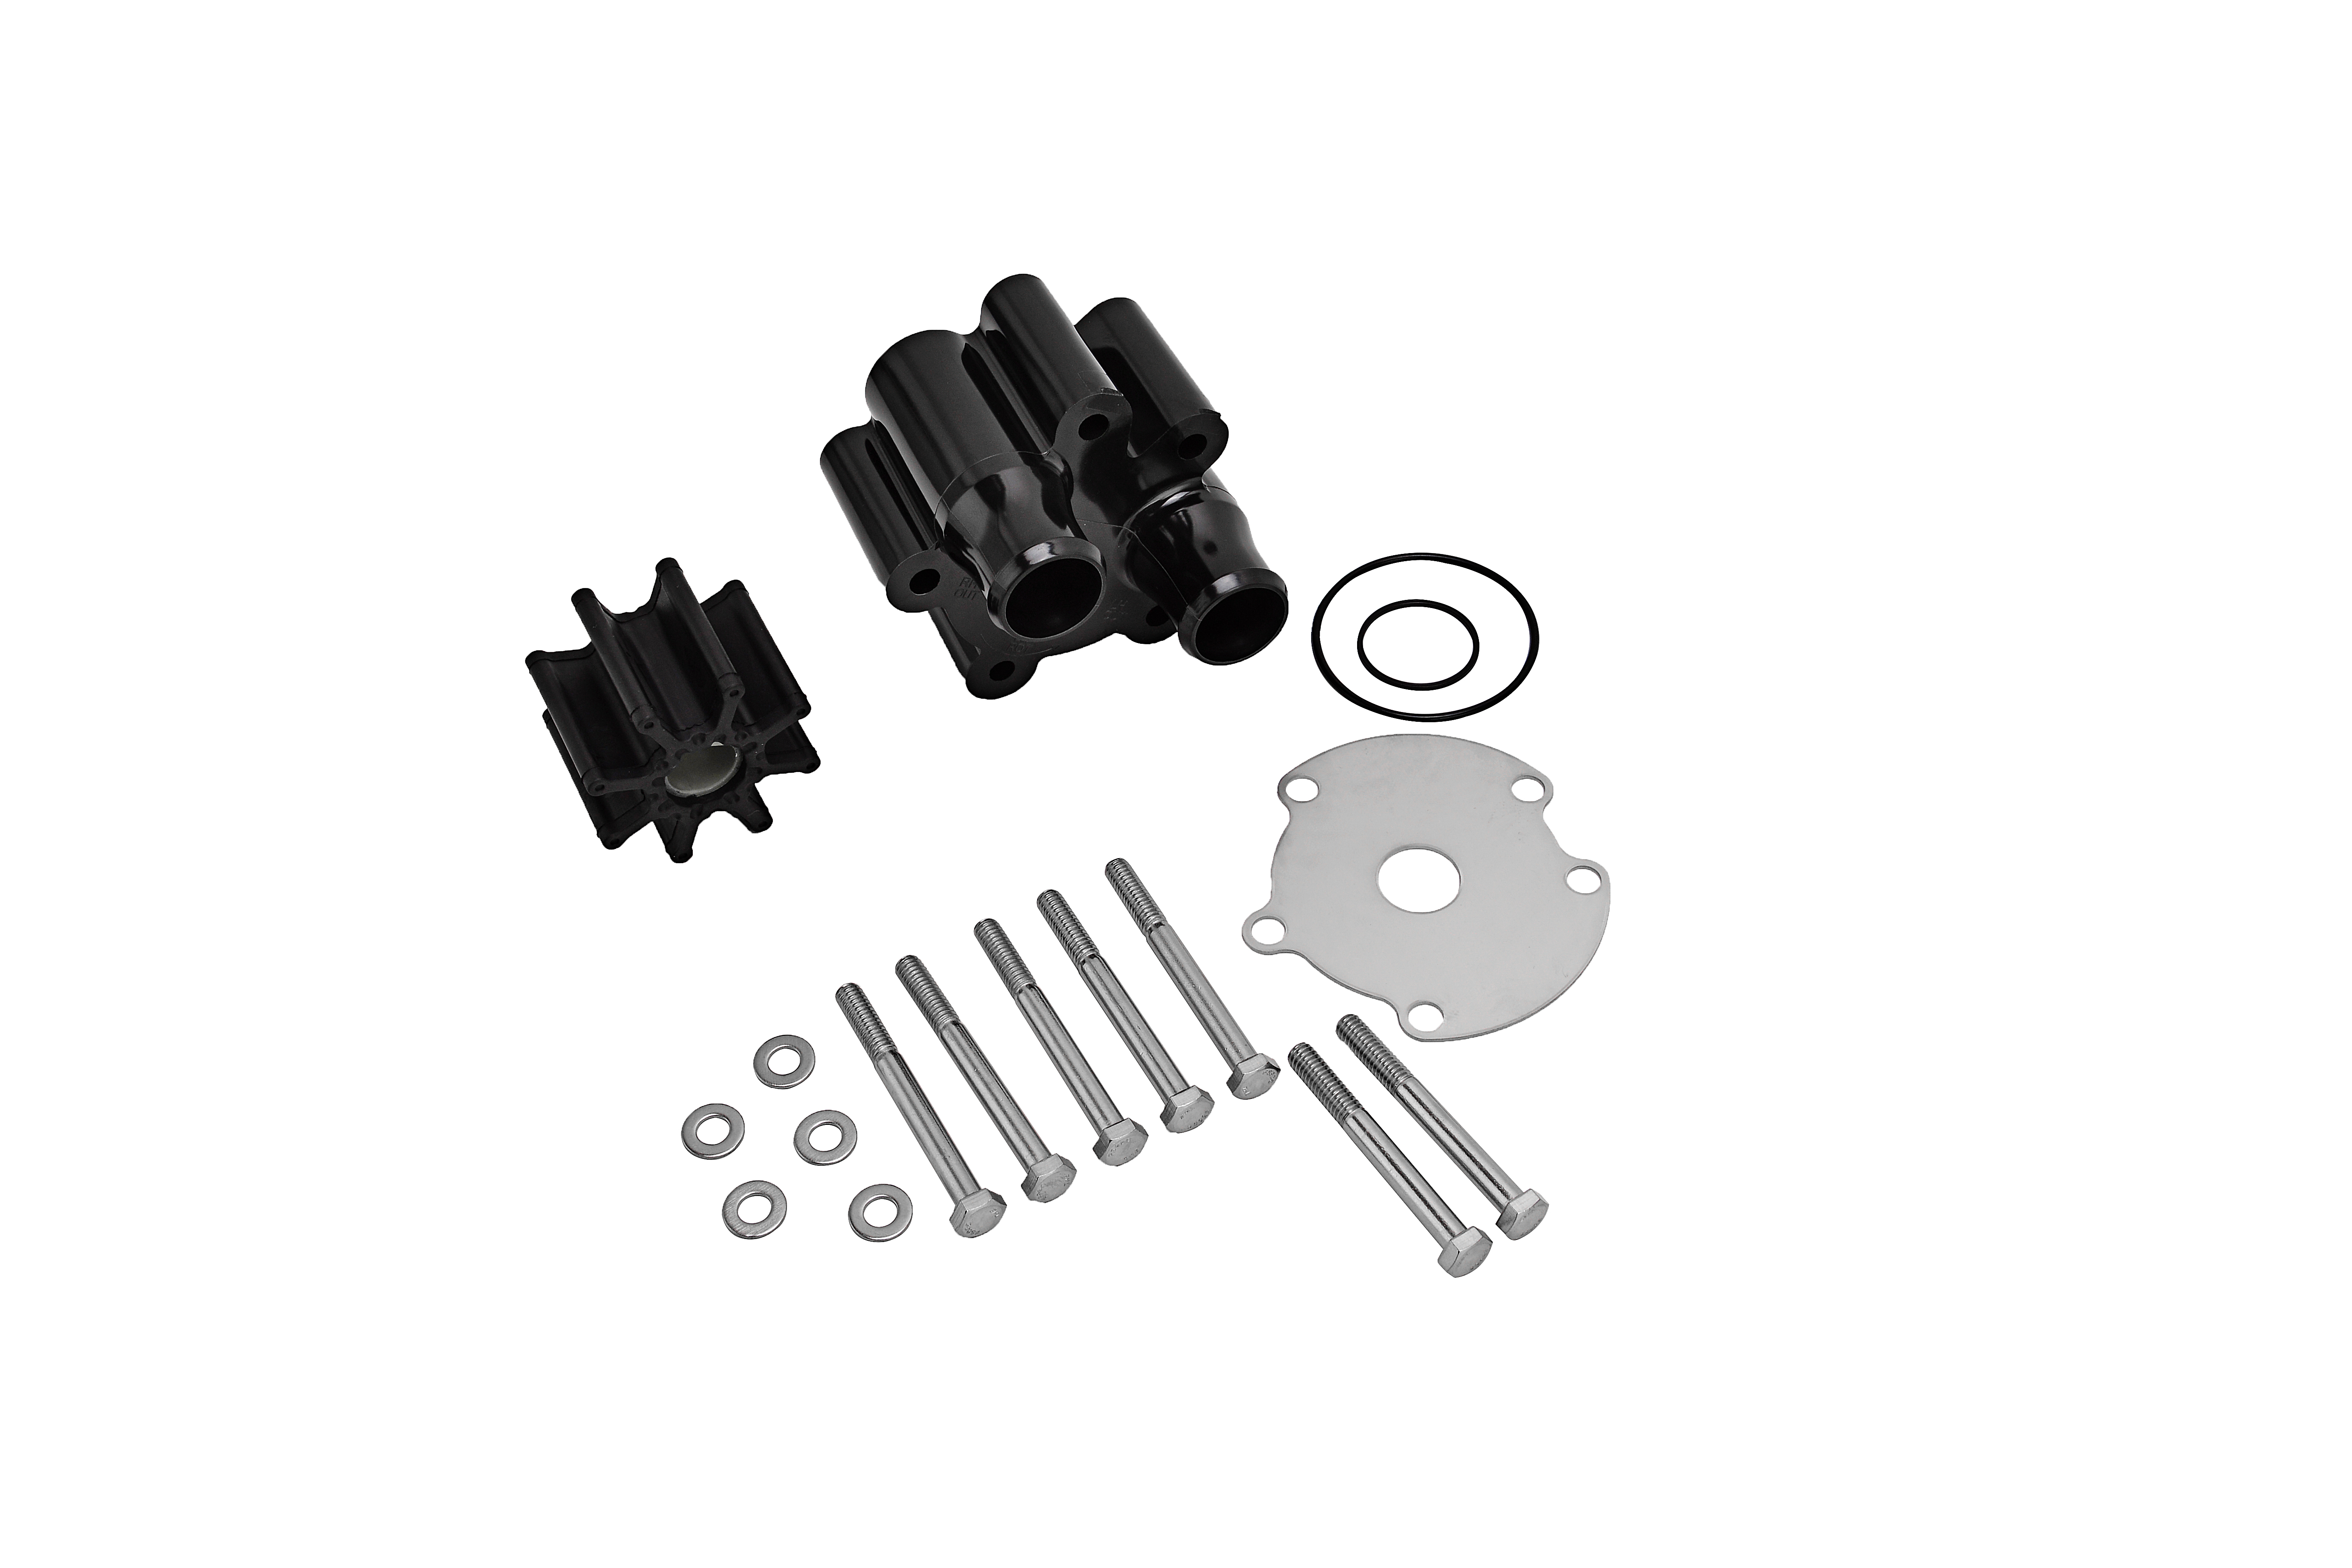 Water Pump Housing Impeller Kit Replaces 18-3150, 46-807151A14 Image